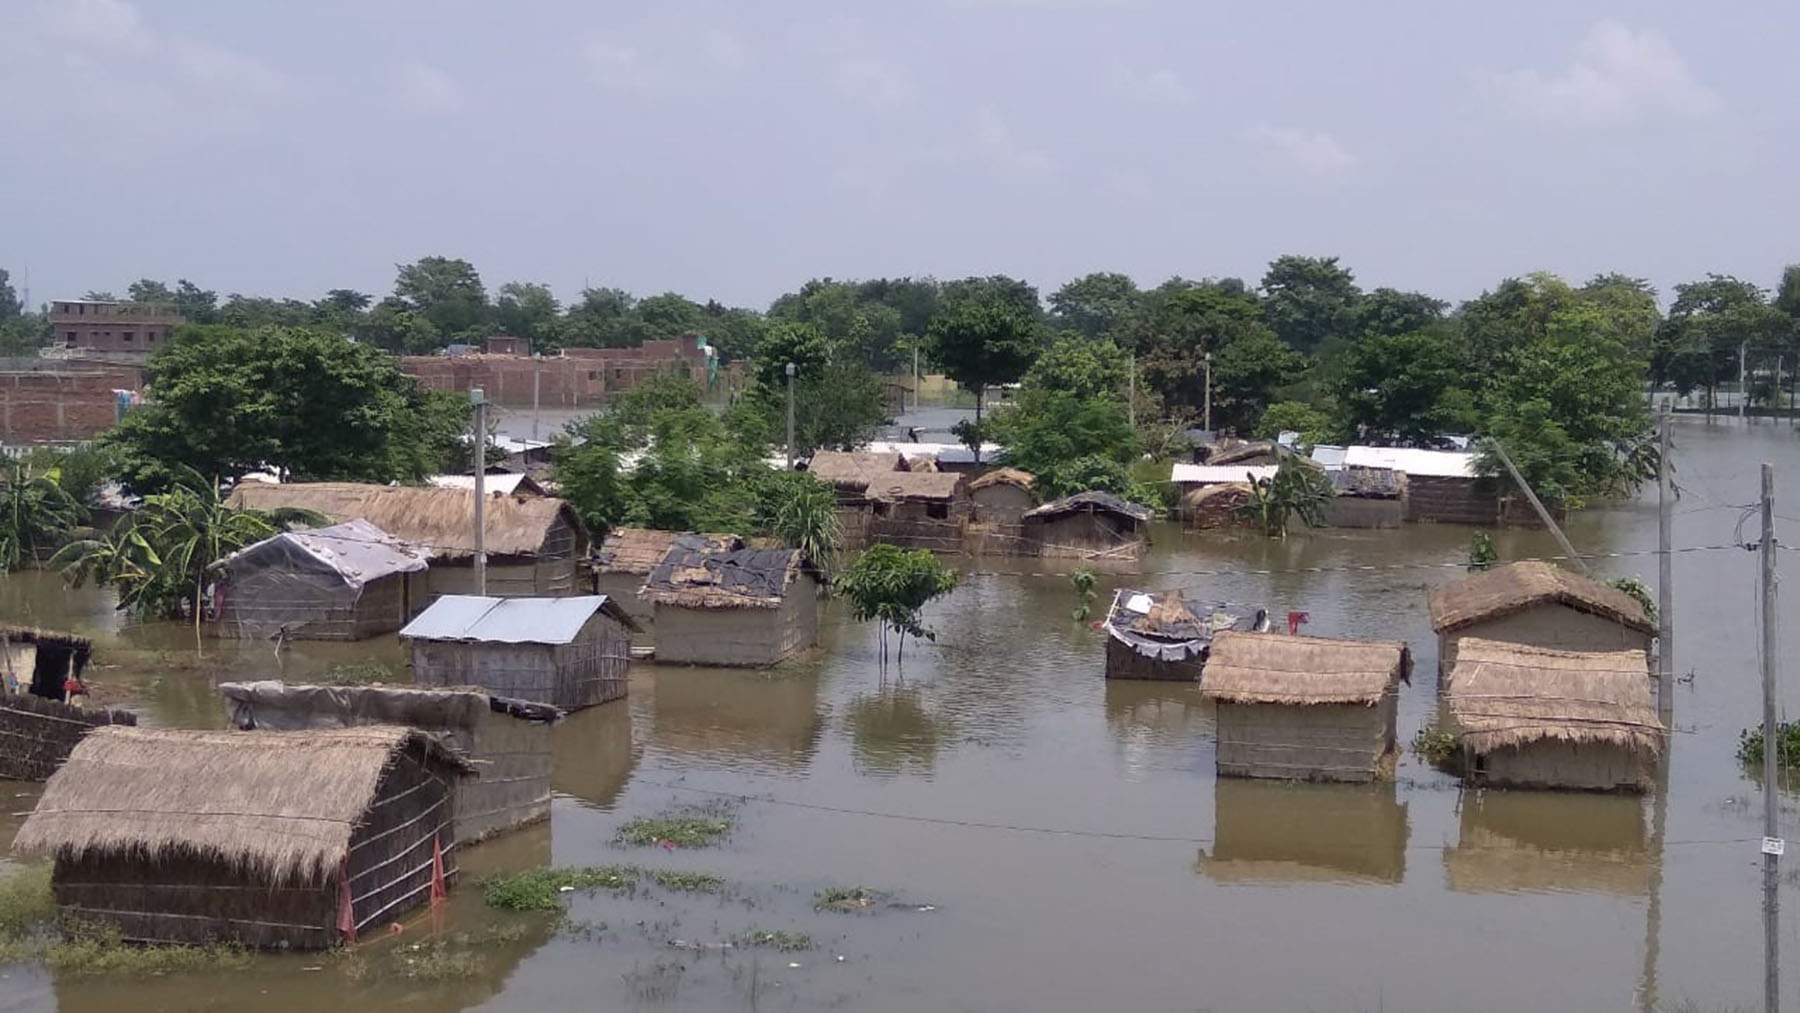 A village in India partially submerged by recent flooding. (Photo courtesy of Doctors for You)